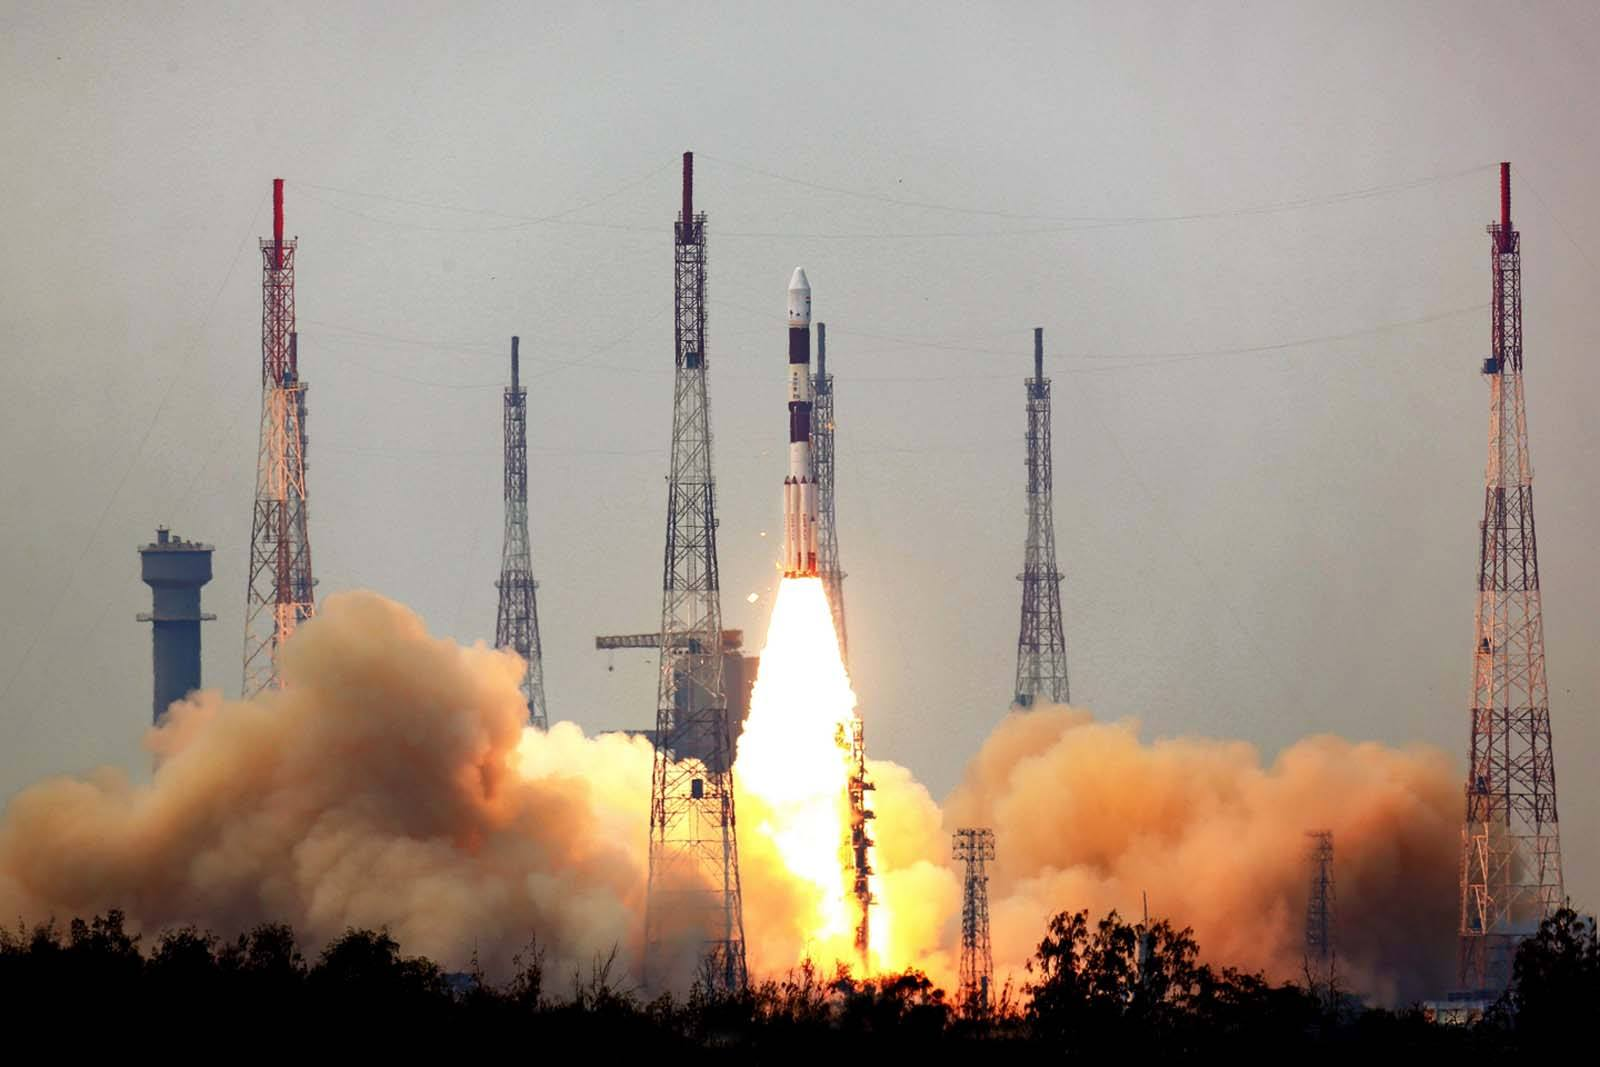 India launches its first multi-wavelength space observatory ASTROSAT